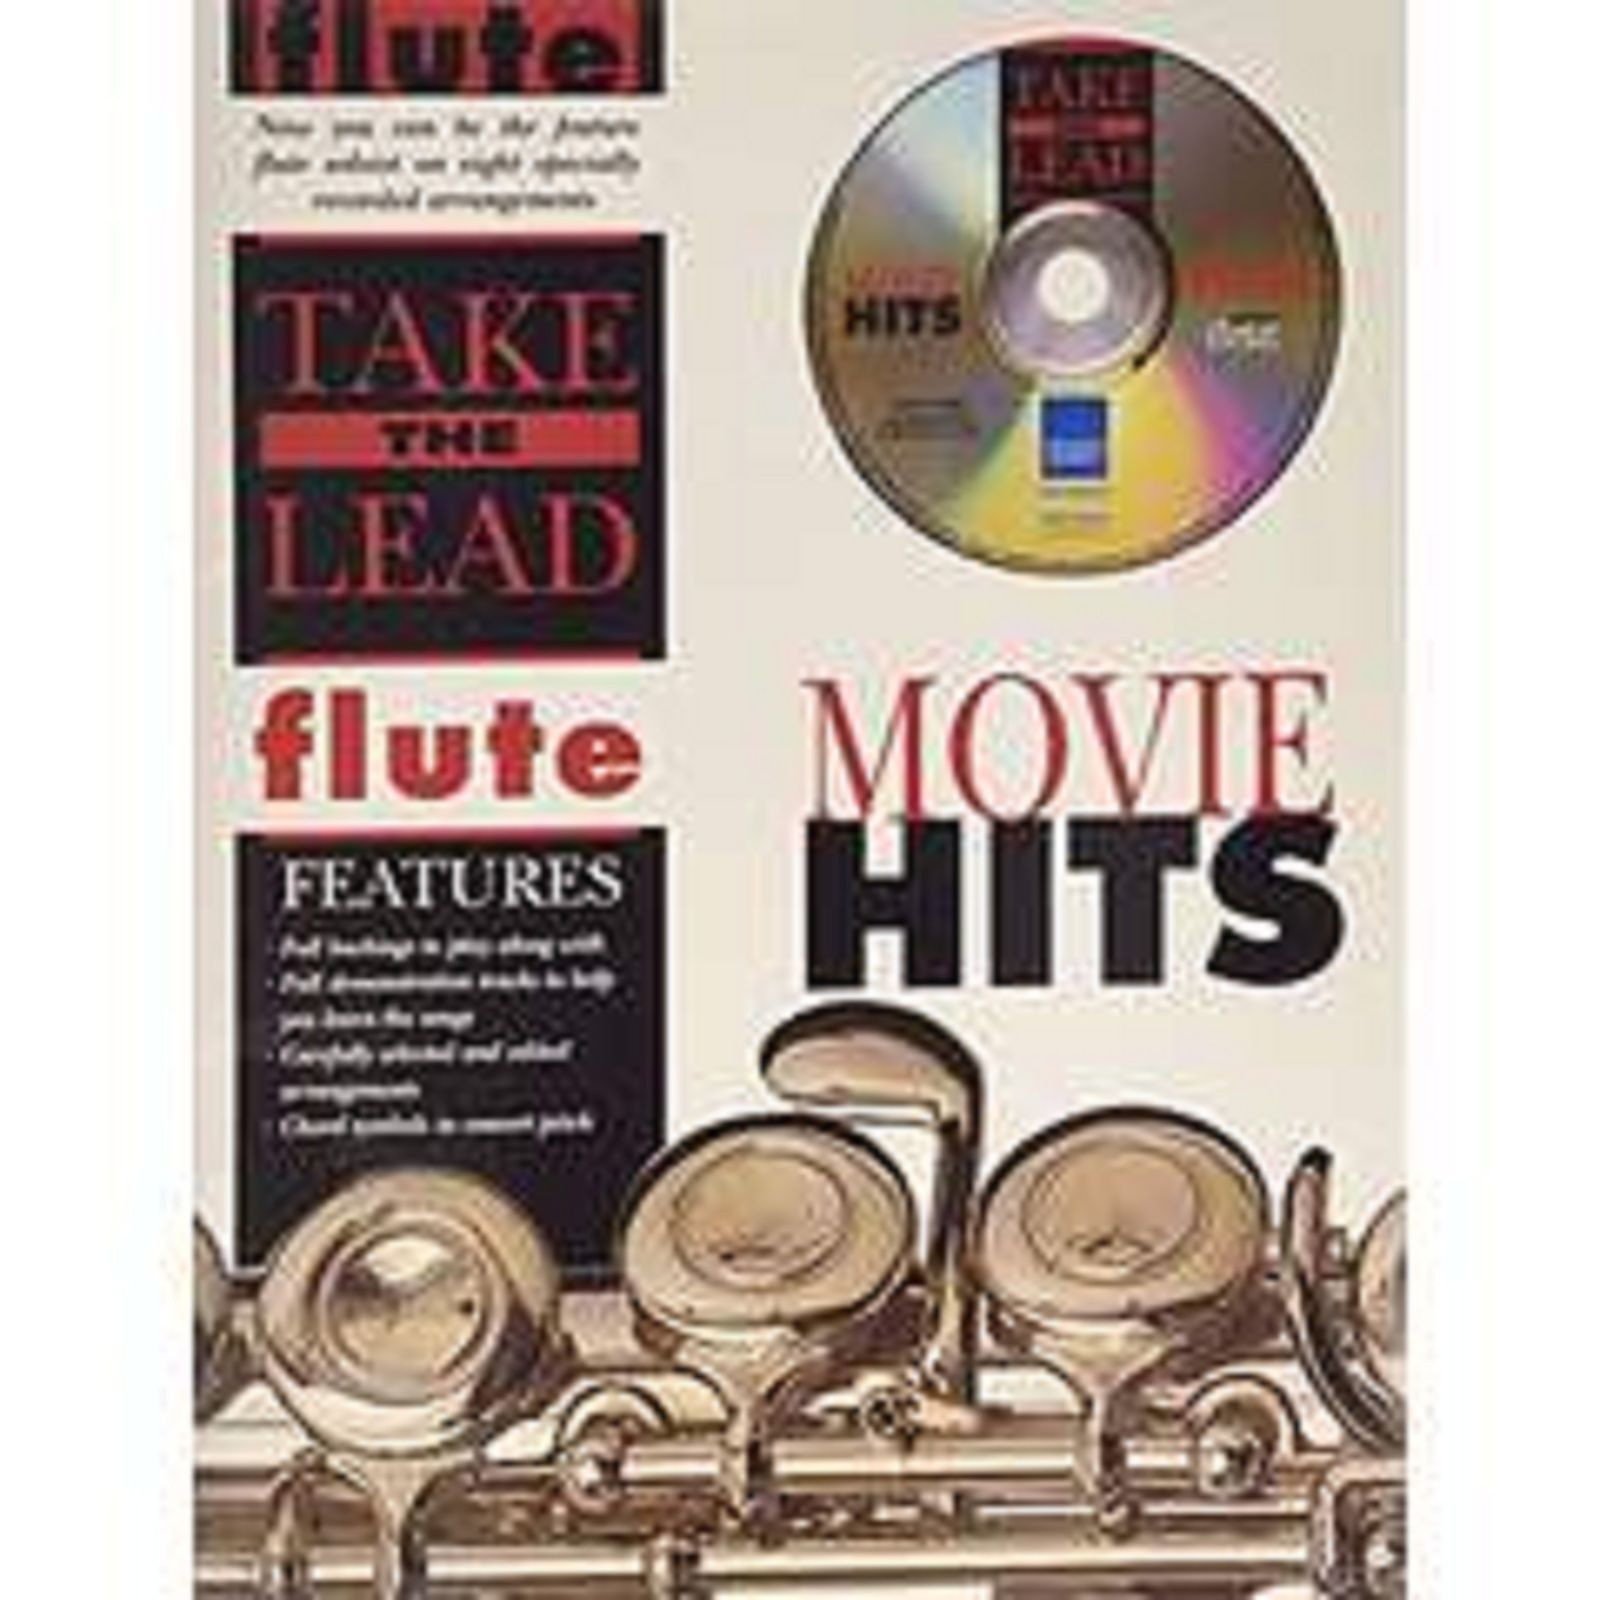 Take The Lead Movie Hits Flute Book CD Sheet Music Play Along Film Tracks S72